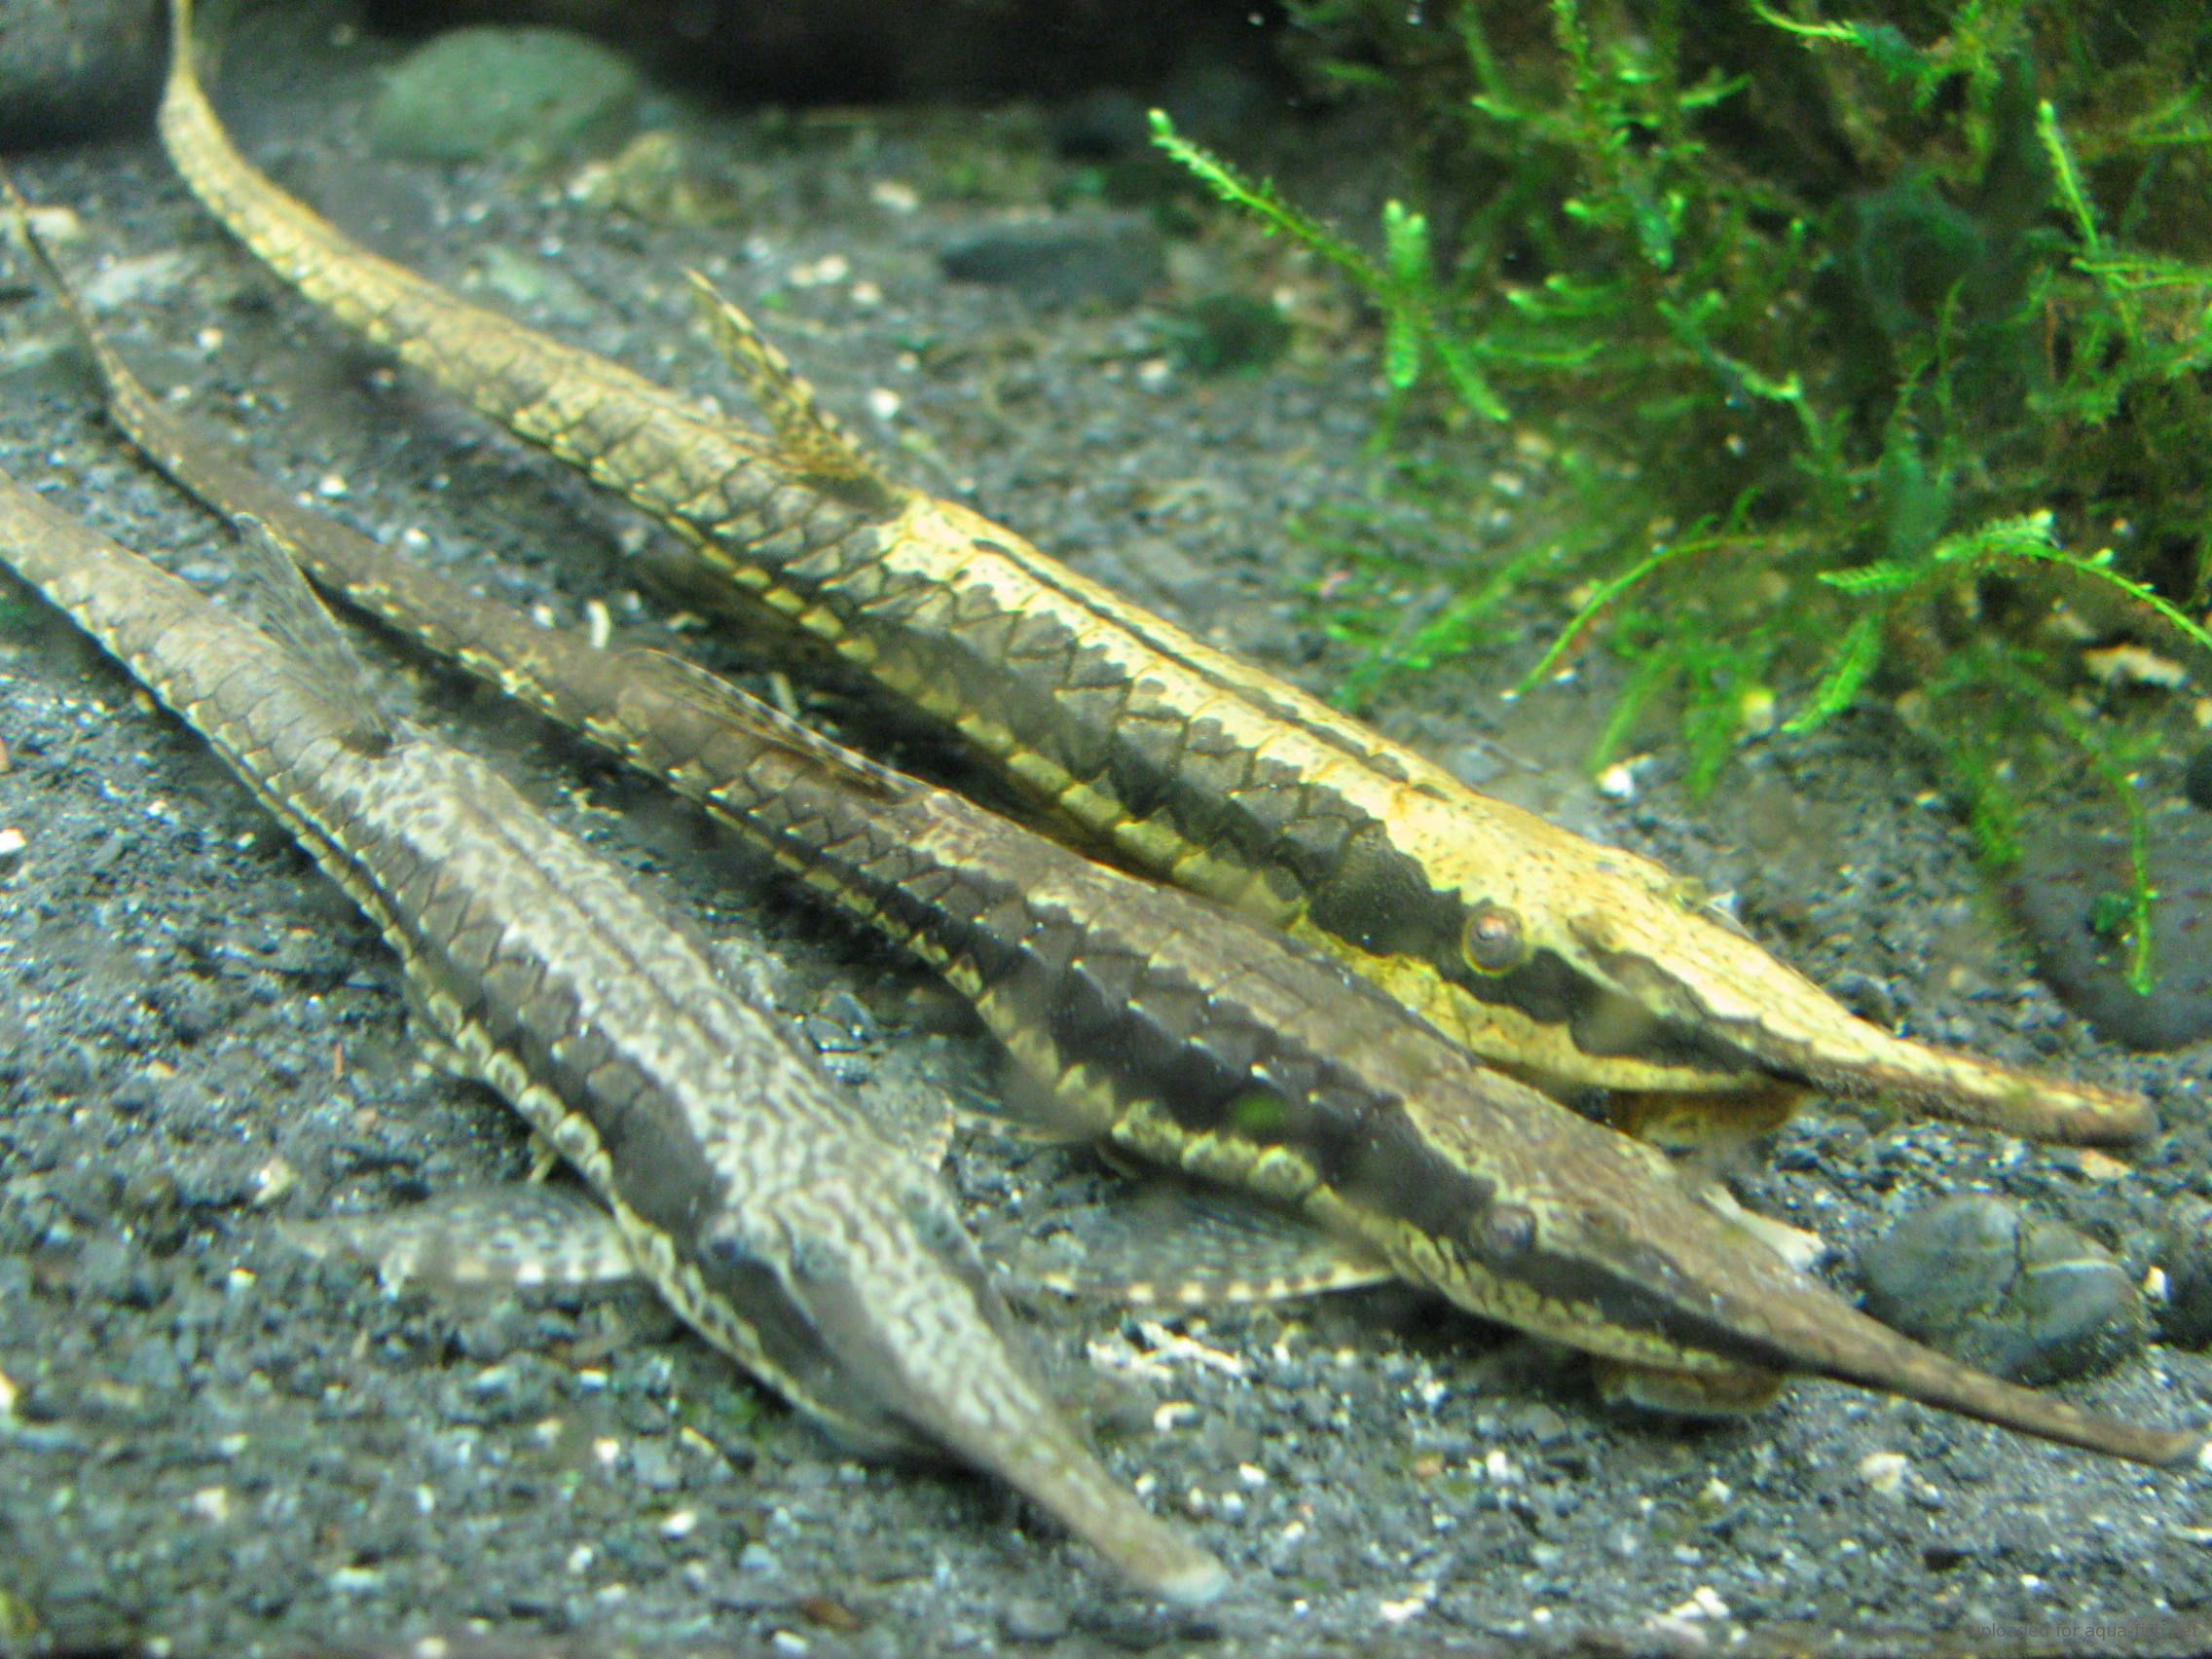 Freshwater aquarium fish information - Farlowella Catfish Twig Catfish